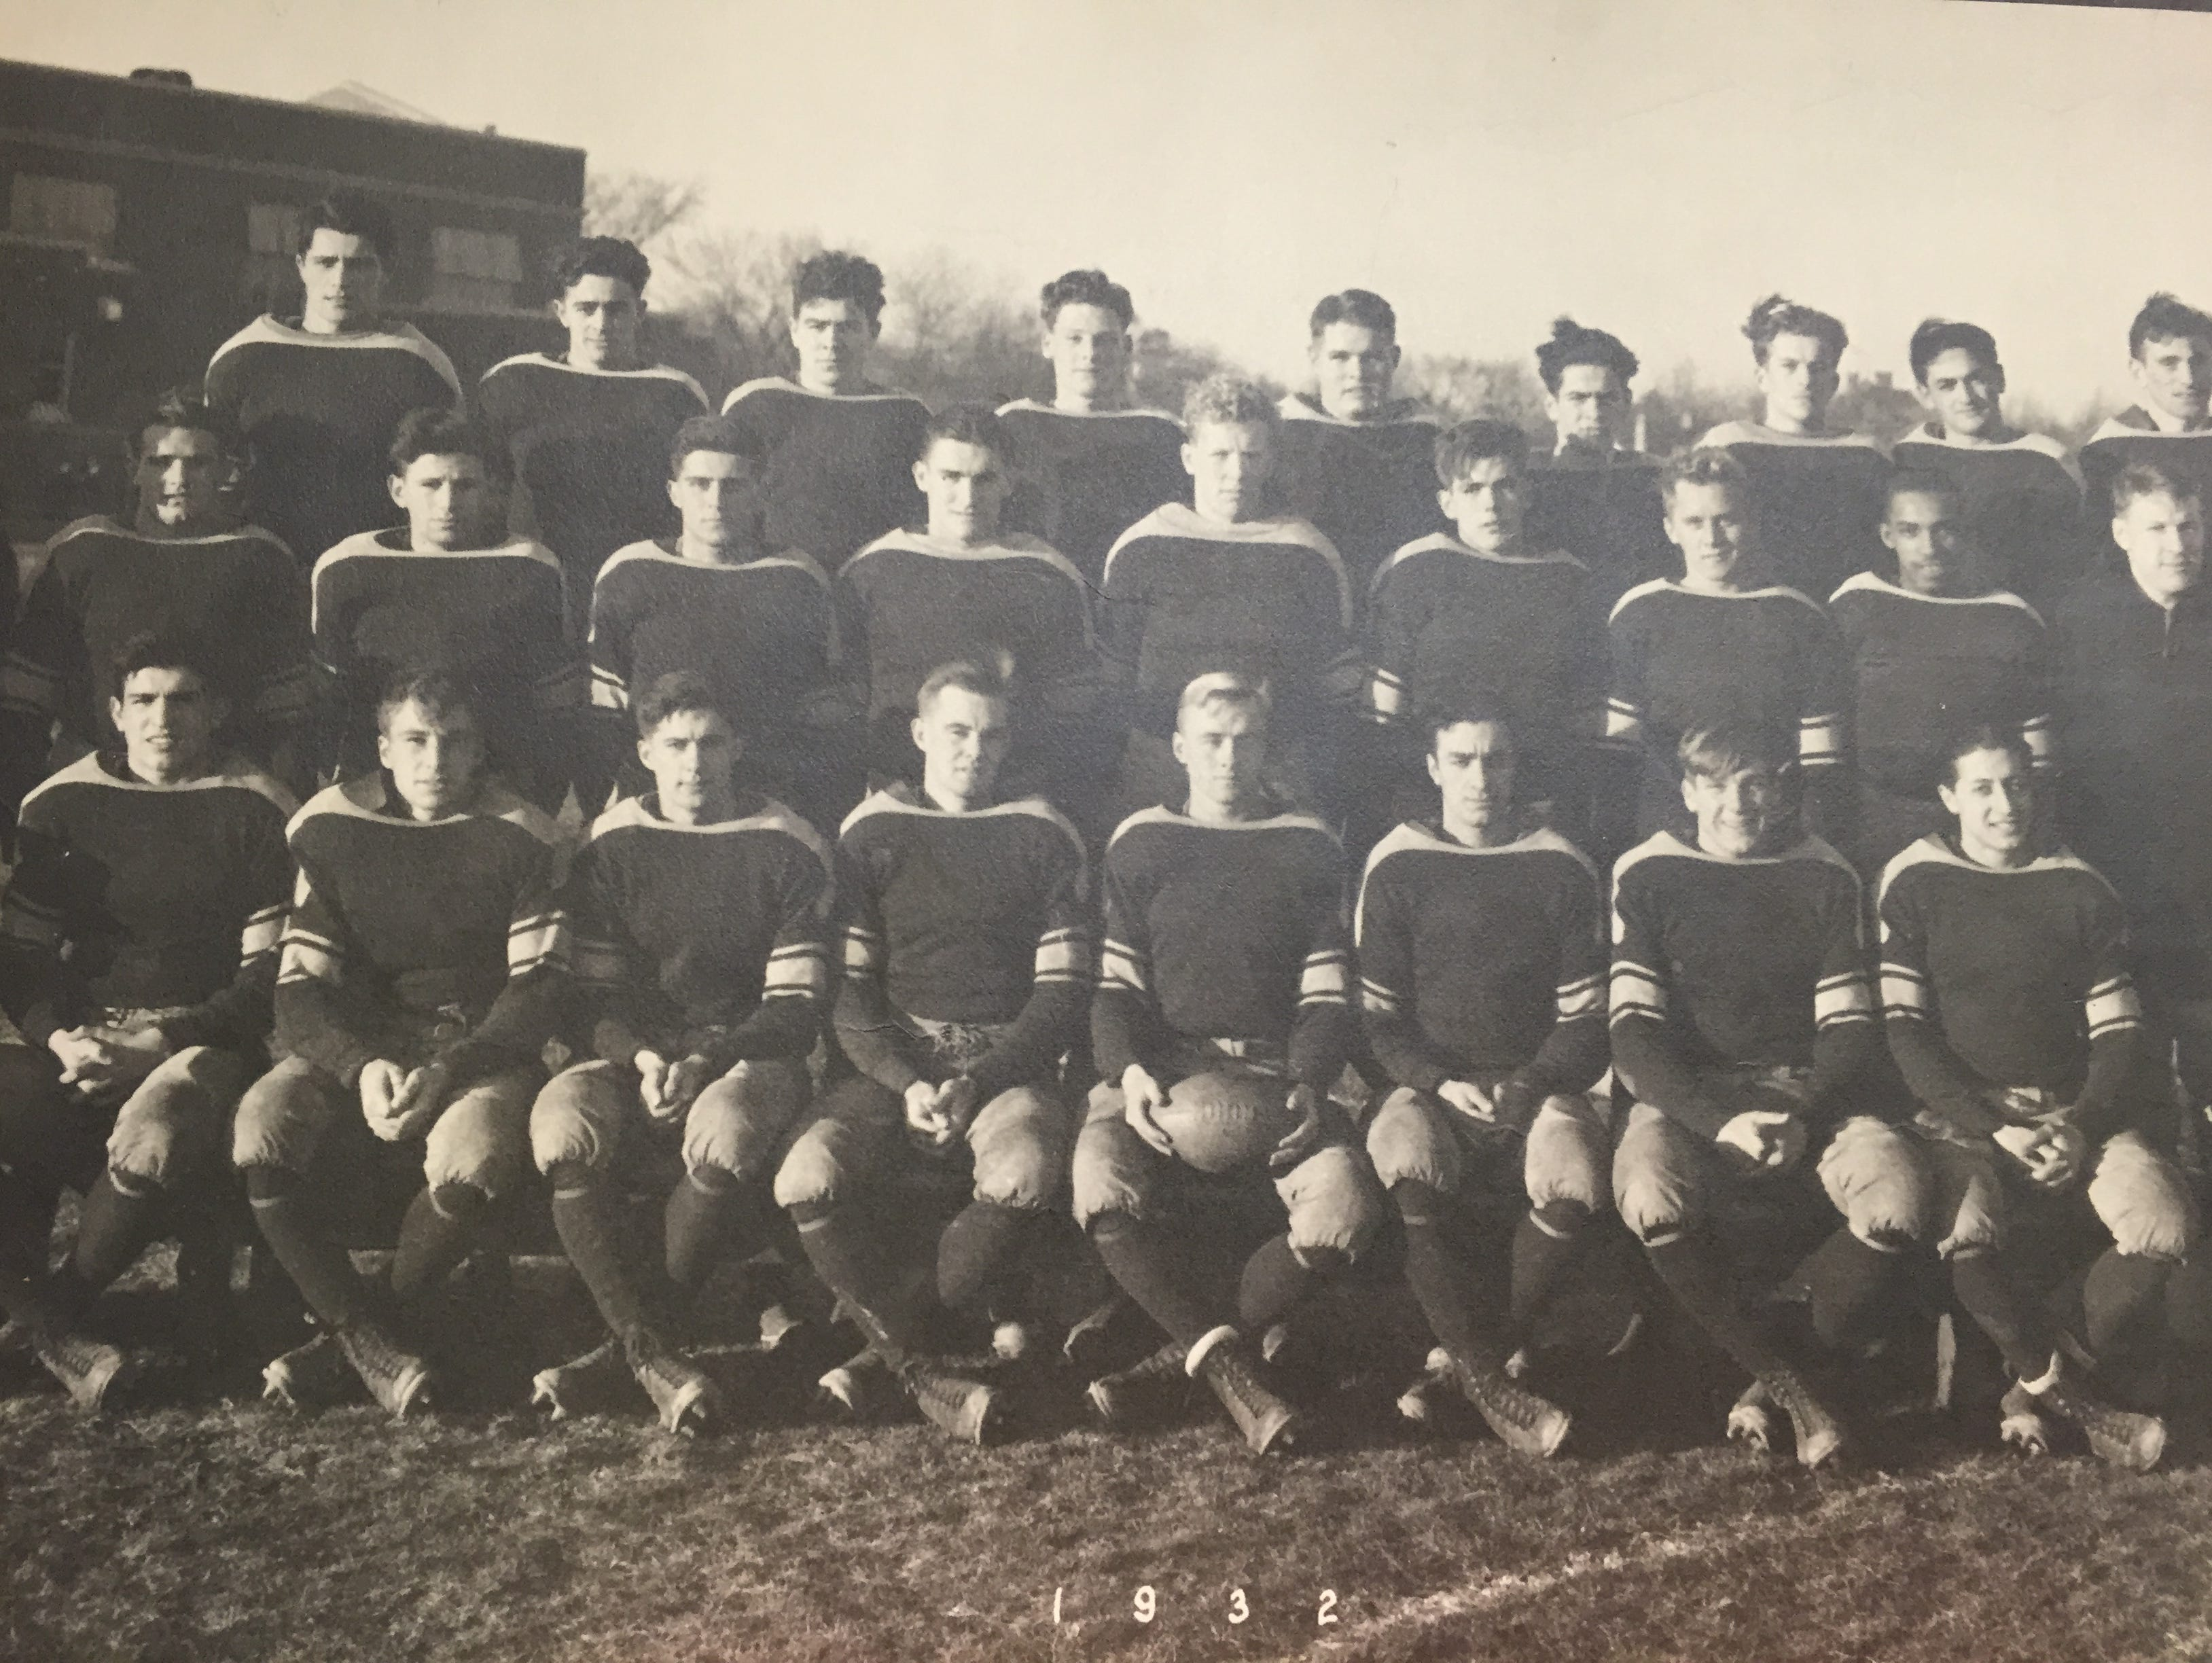 Photo of the 1932 Long Branch team, which featured the grandfather of current Long Branch head coach Dan George.